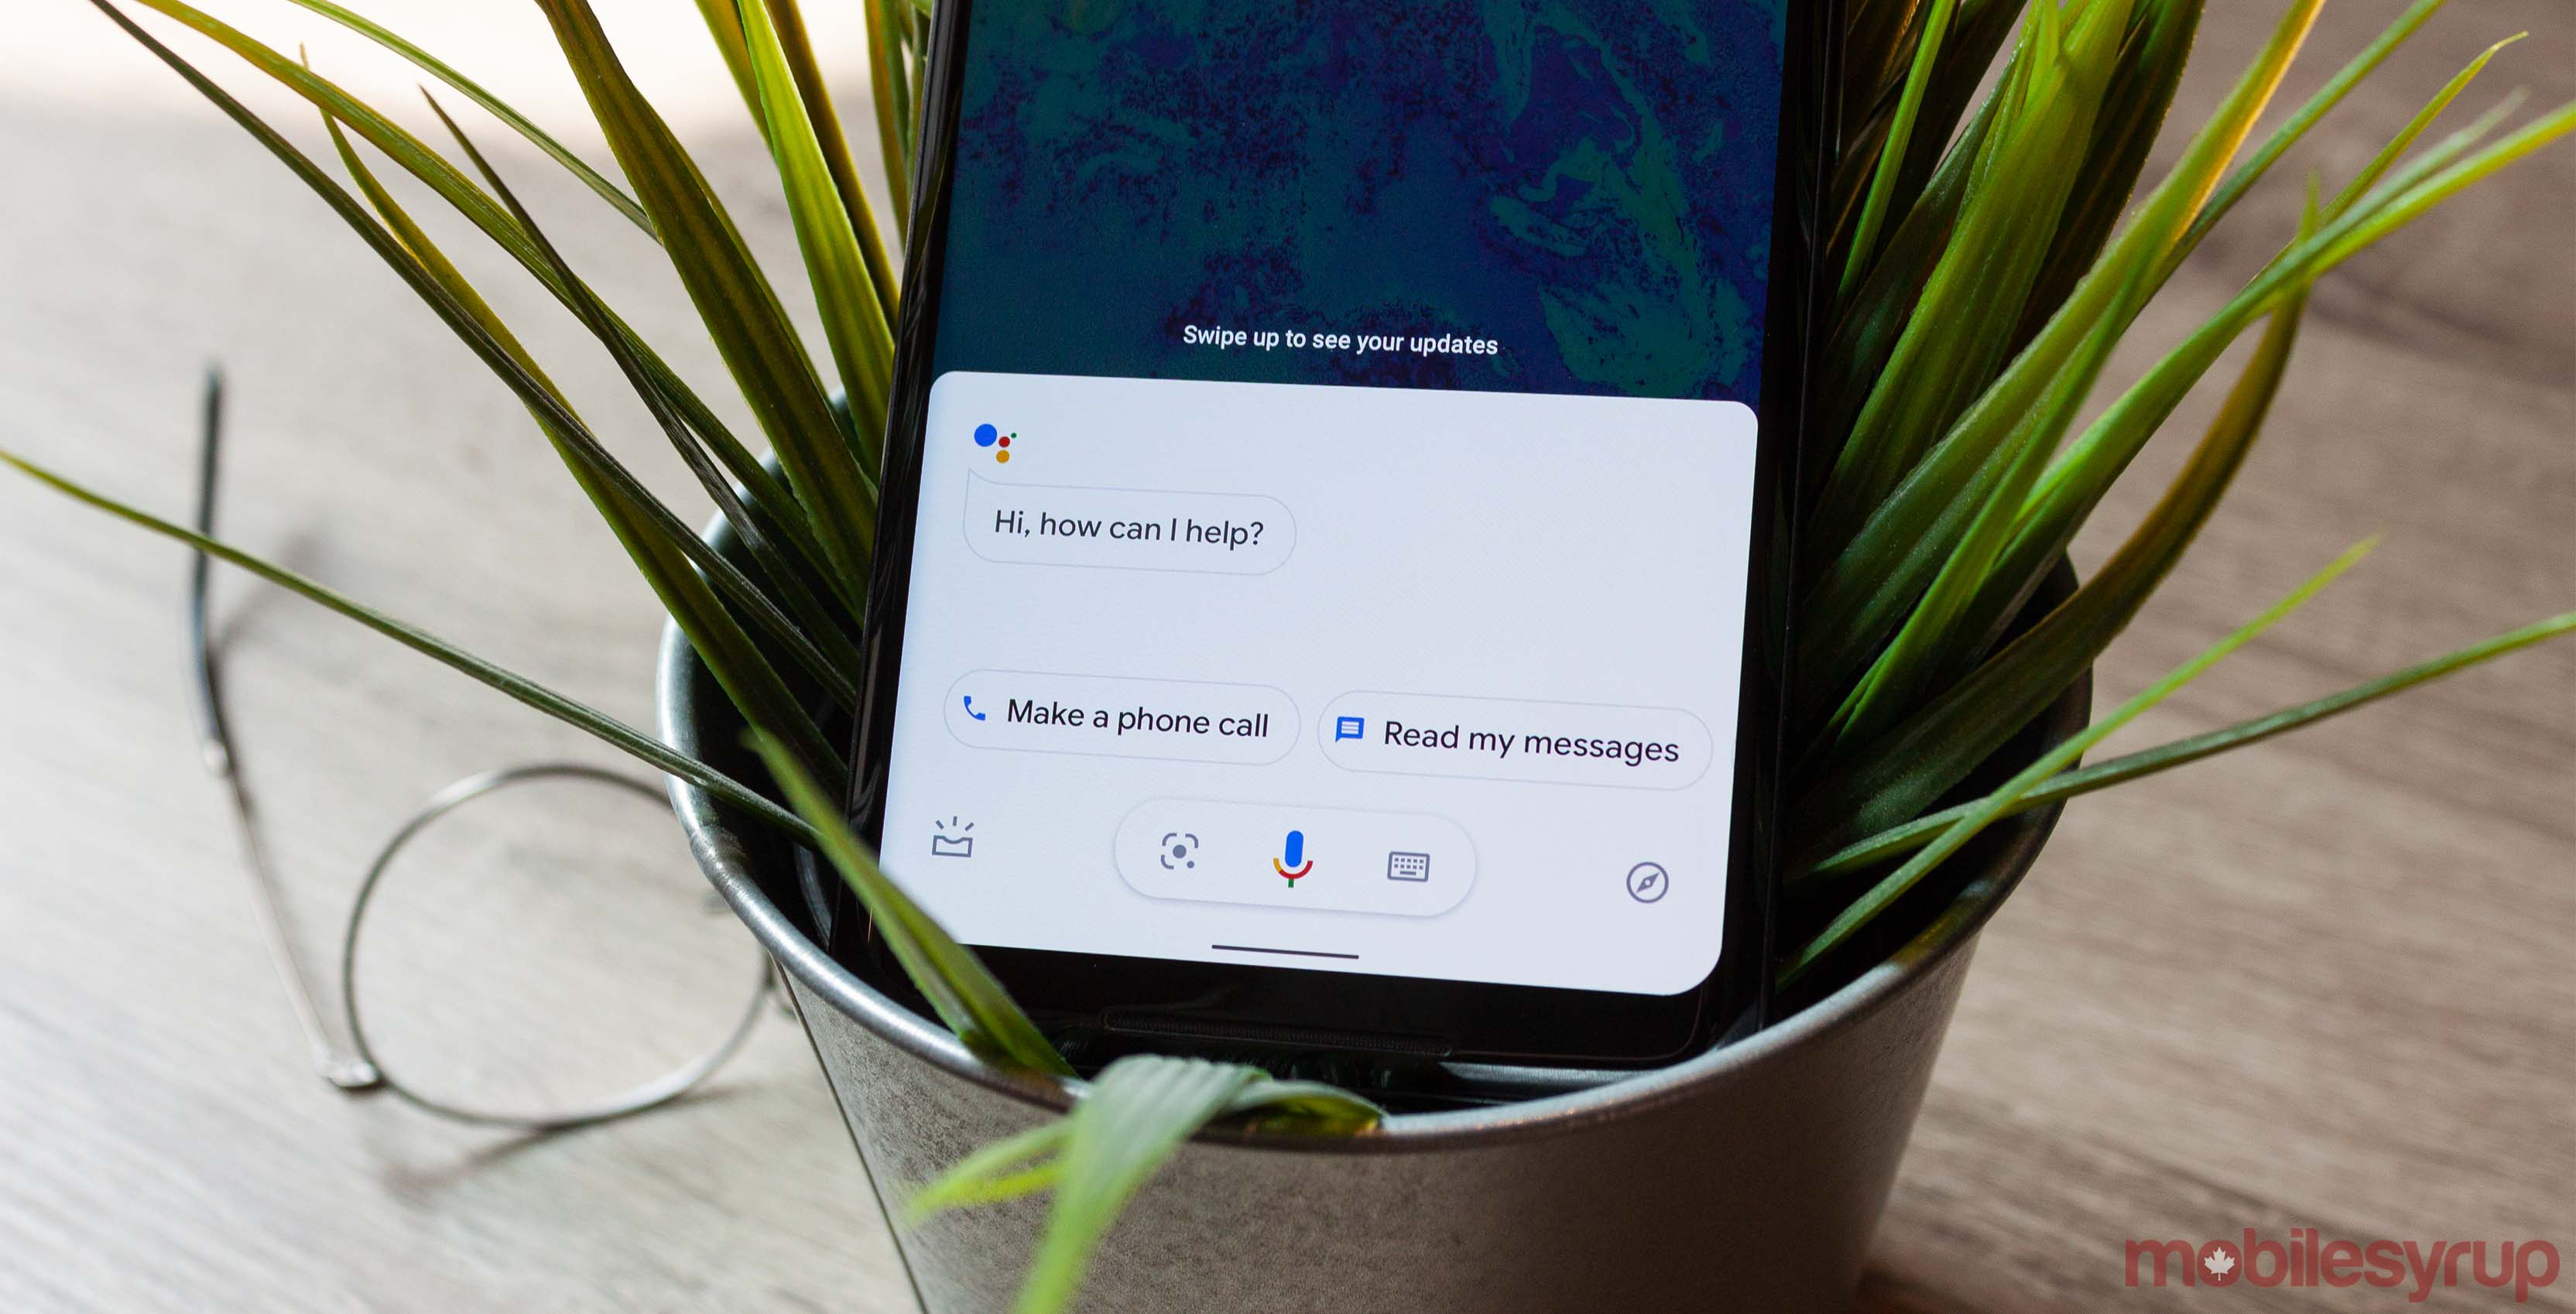 Google testing new, compact Assistant layout ahead of major